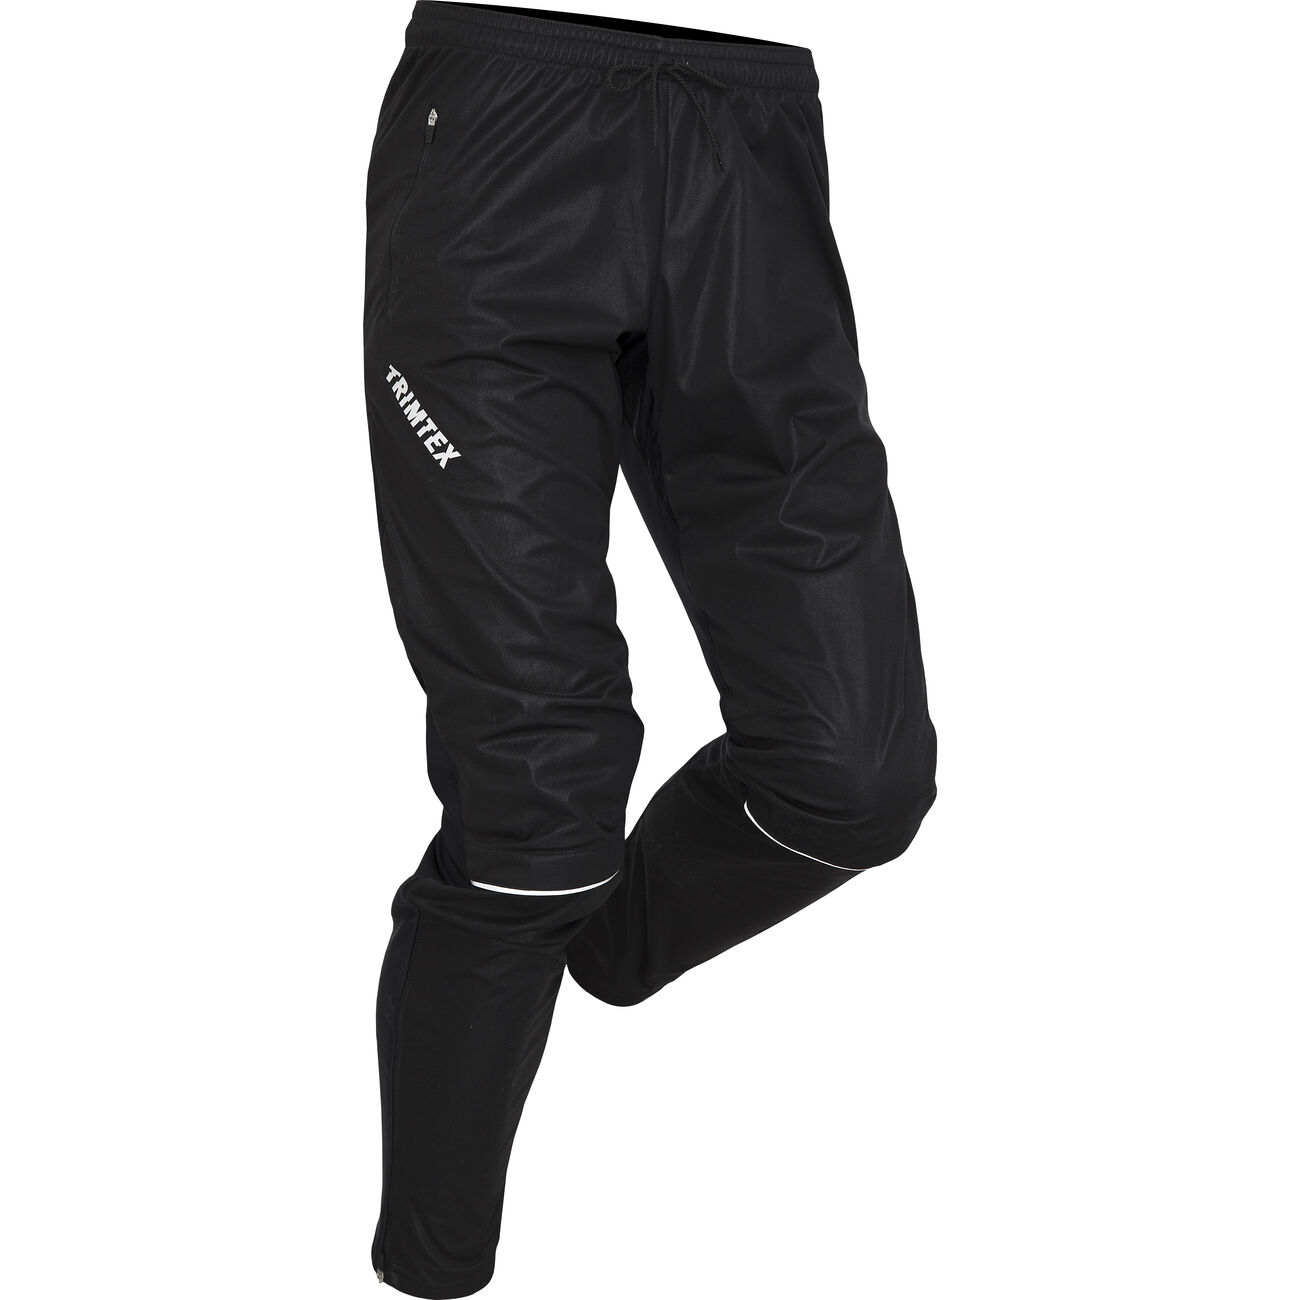 Element training pants men's